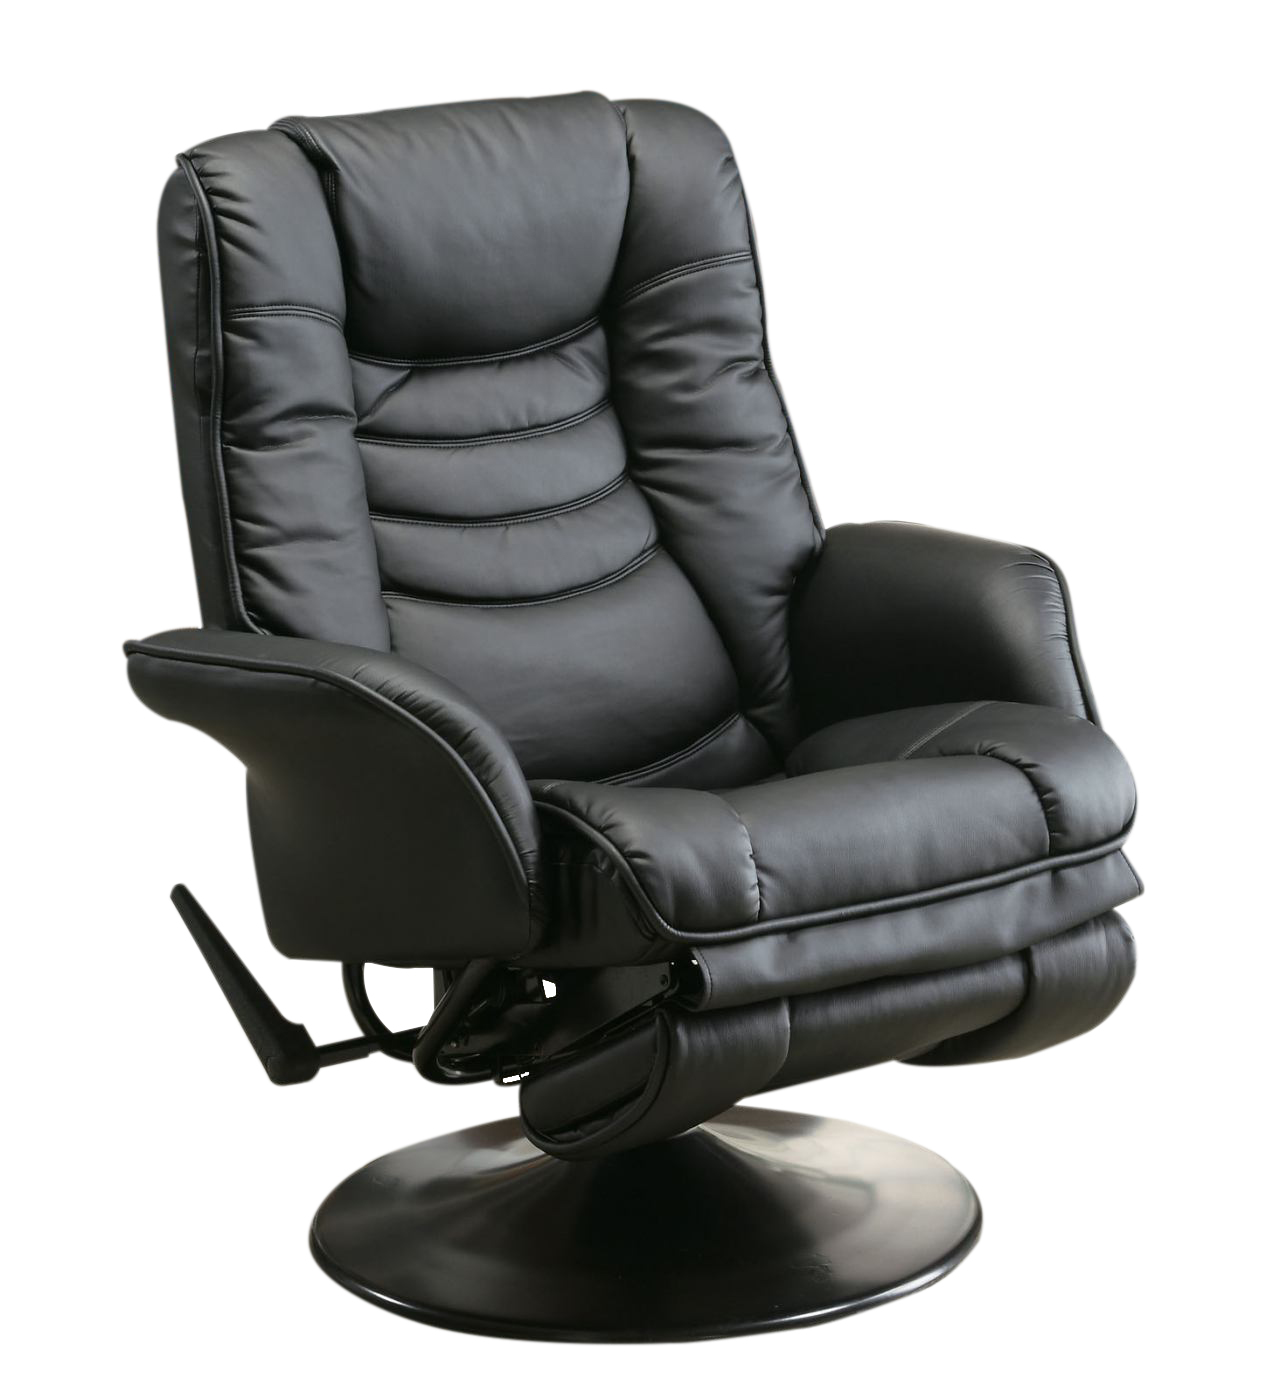 Coaster Swivel Reclining Chair 600229